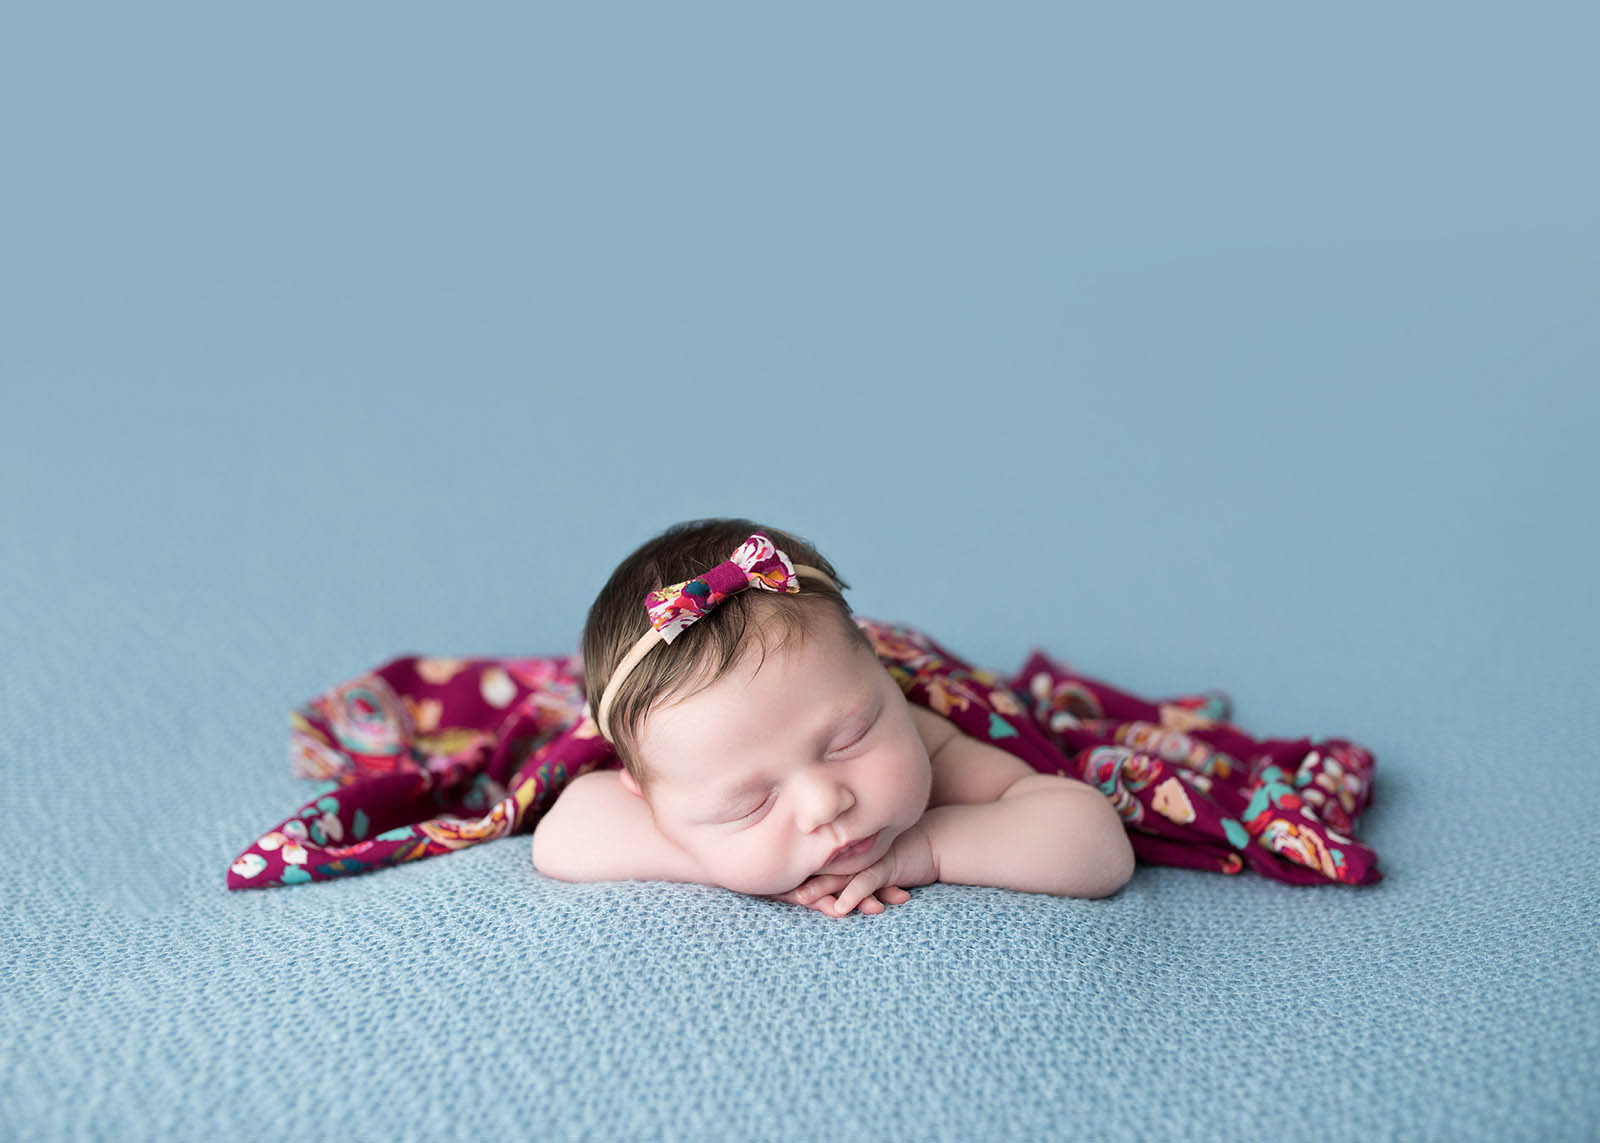 Newborn baby on blue blanket